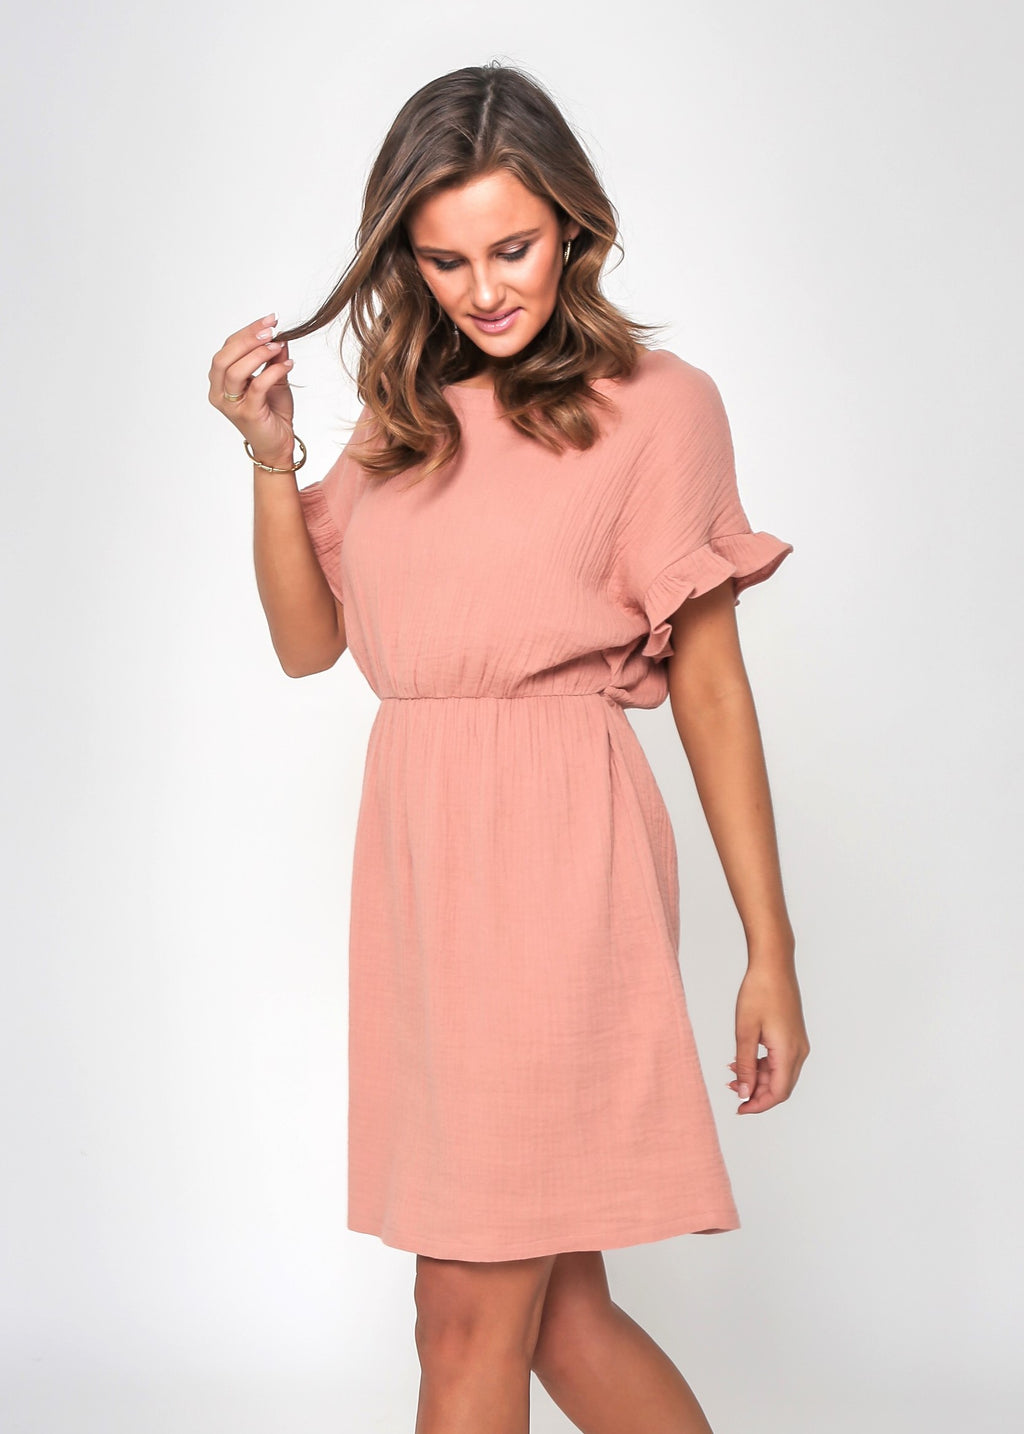 LIZZIE DRESS - BRICK - LAST STOCK